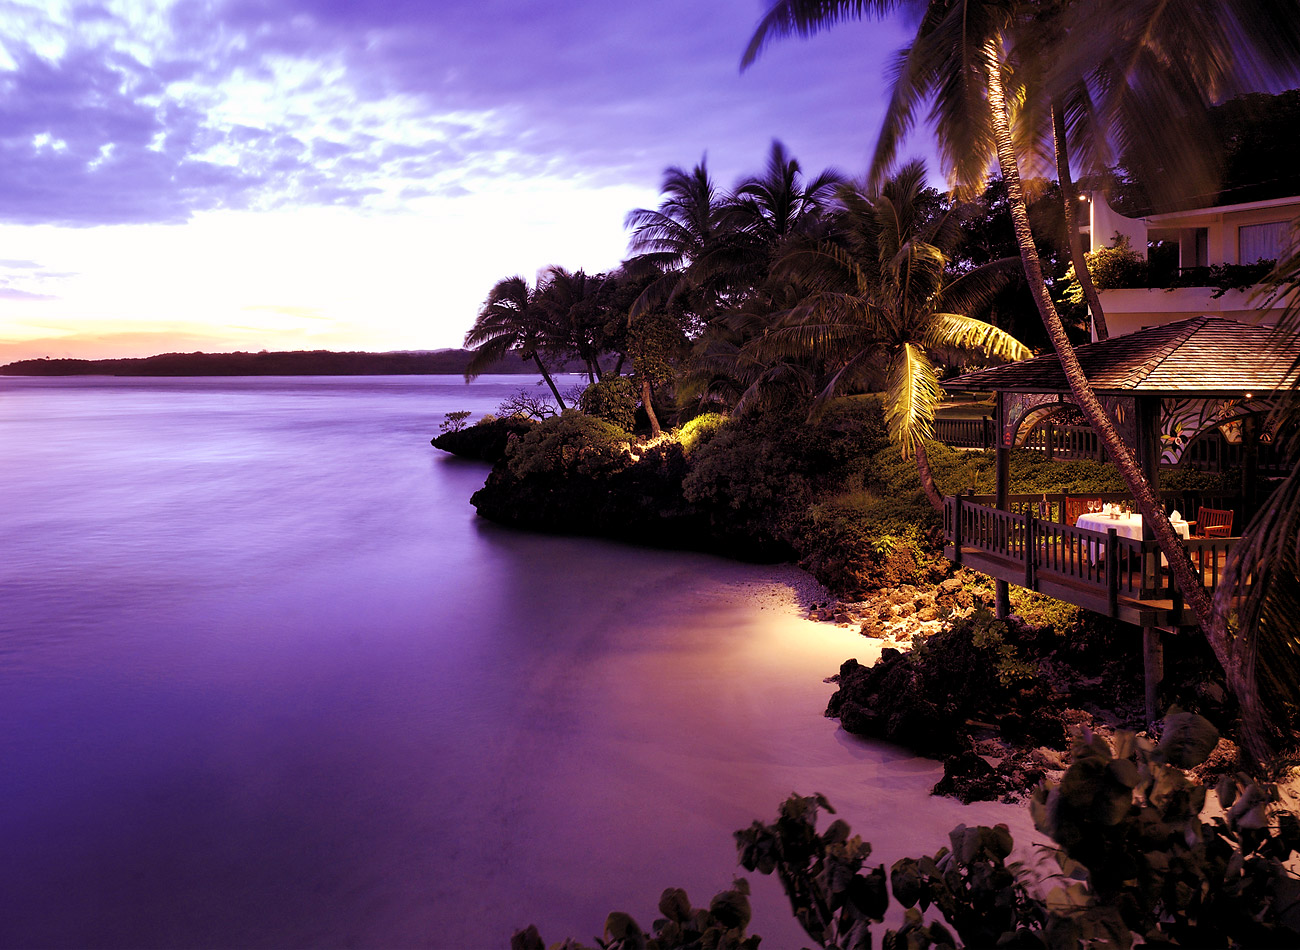 Shangri-la Fijian resort and spa